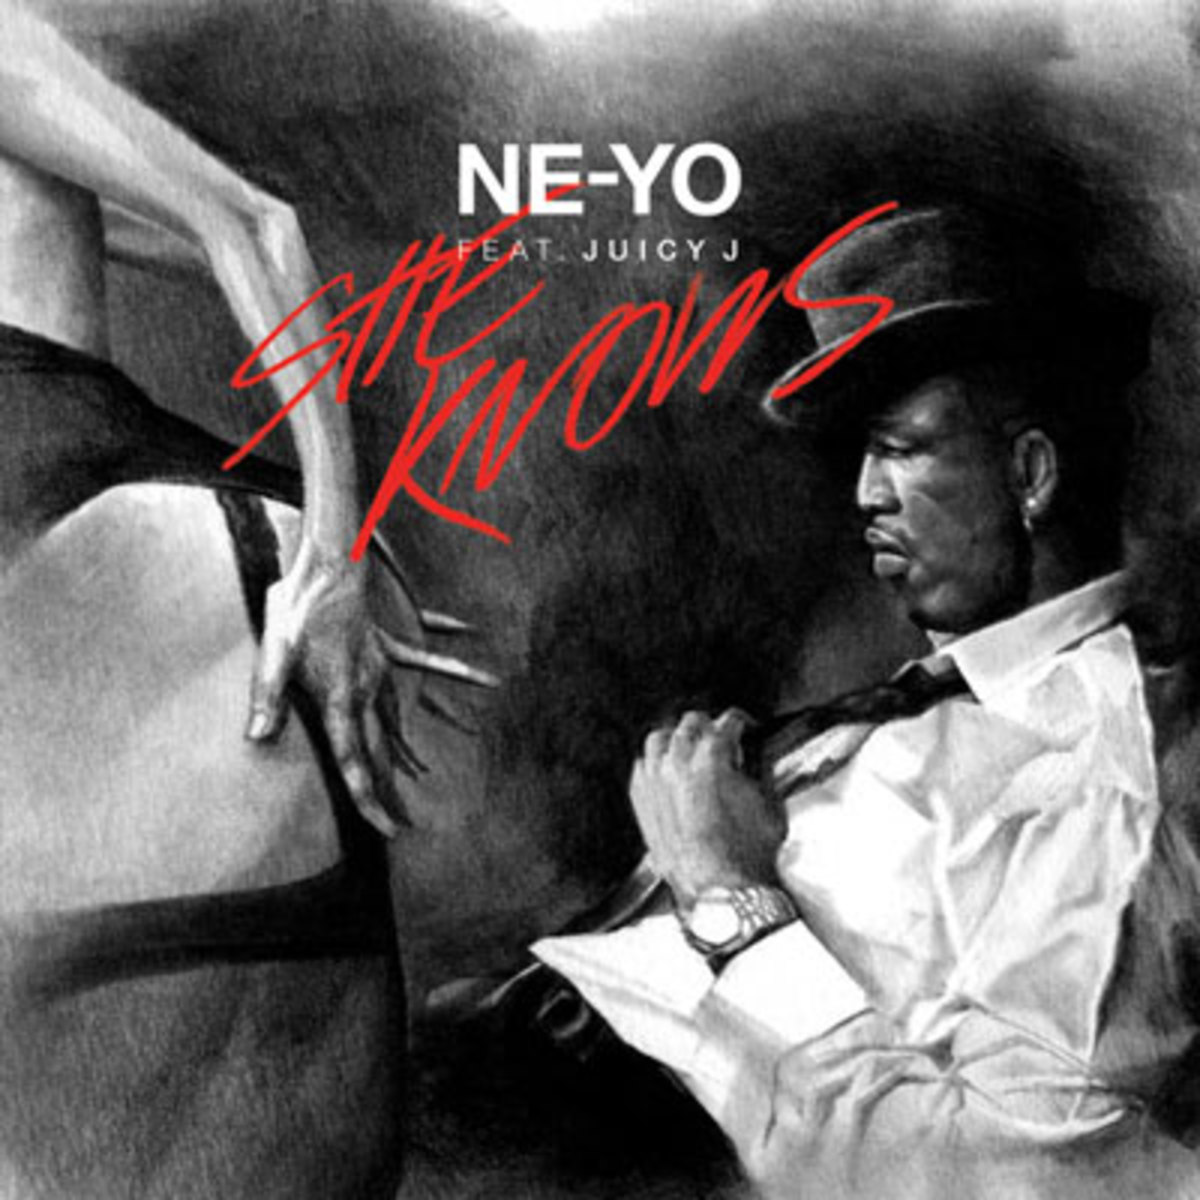 neyo-sheknows.jpg